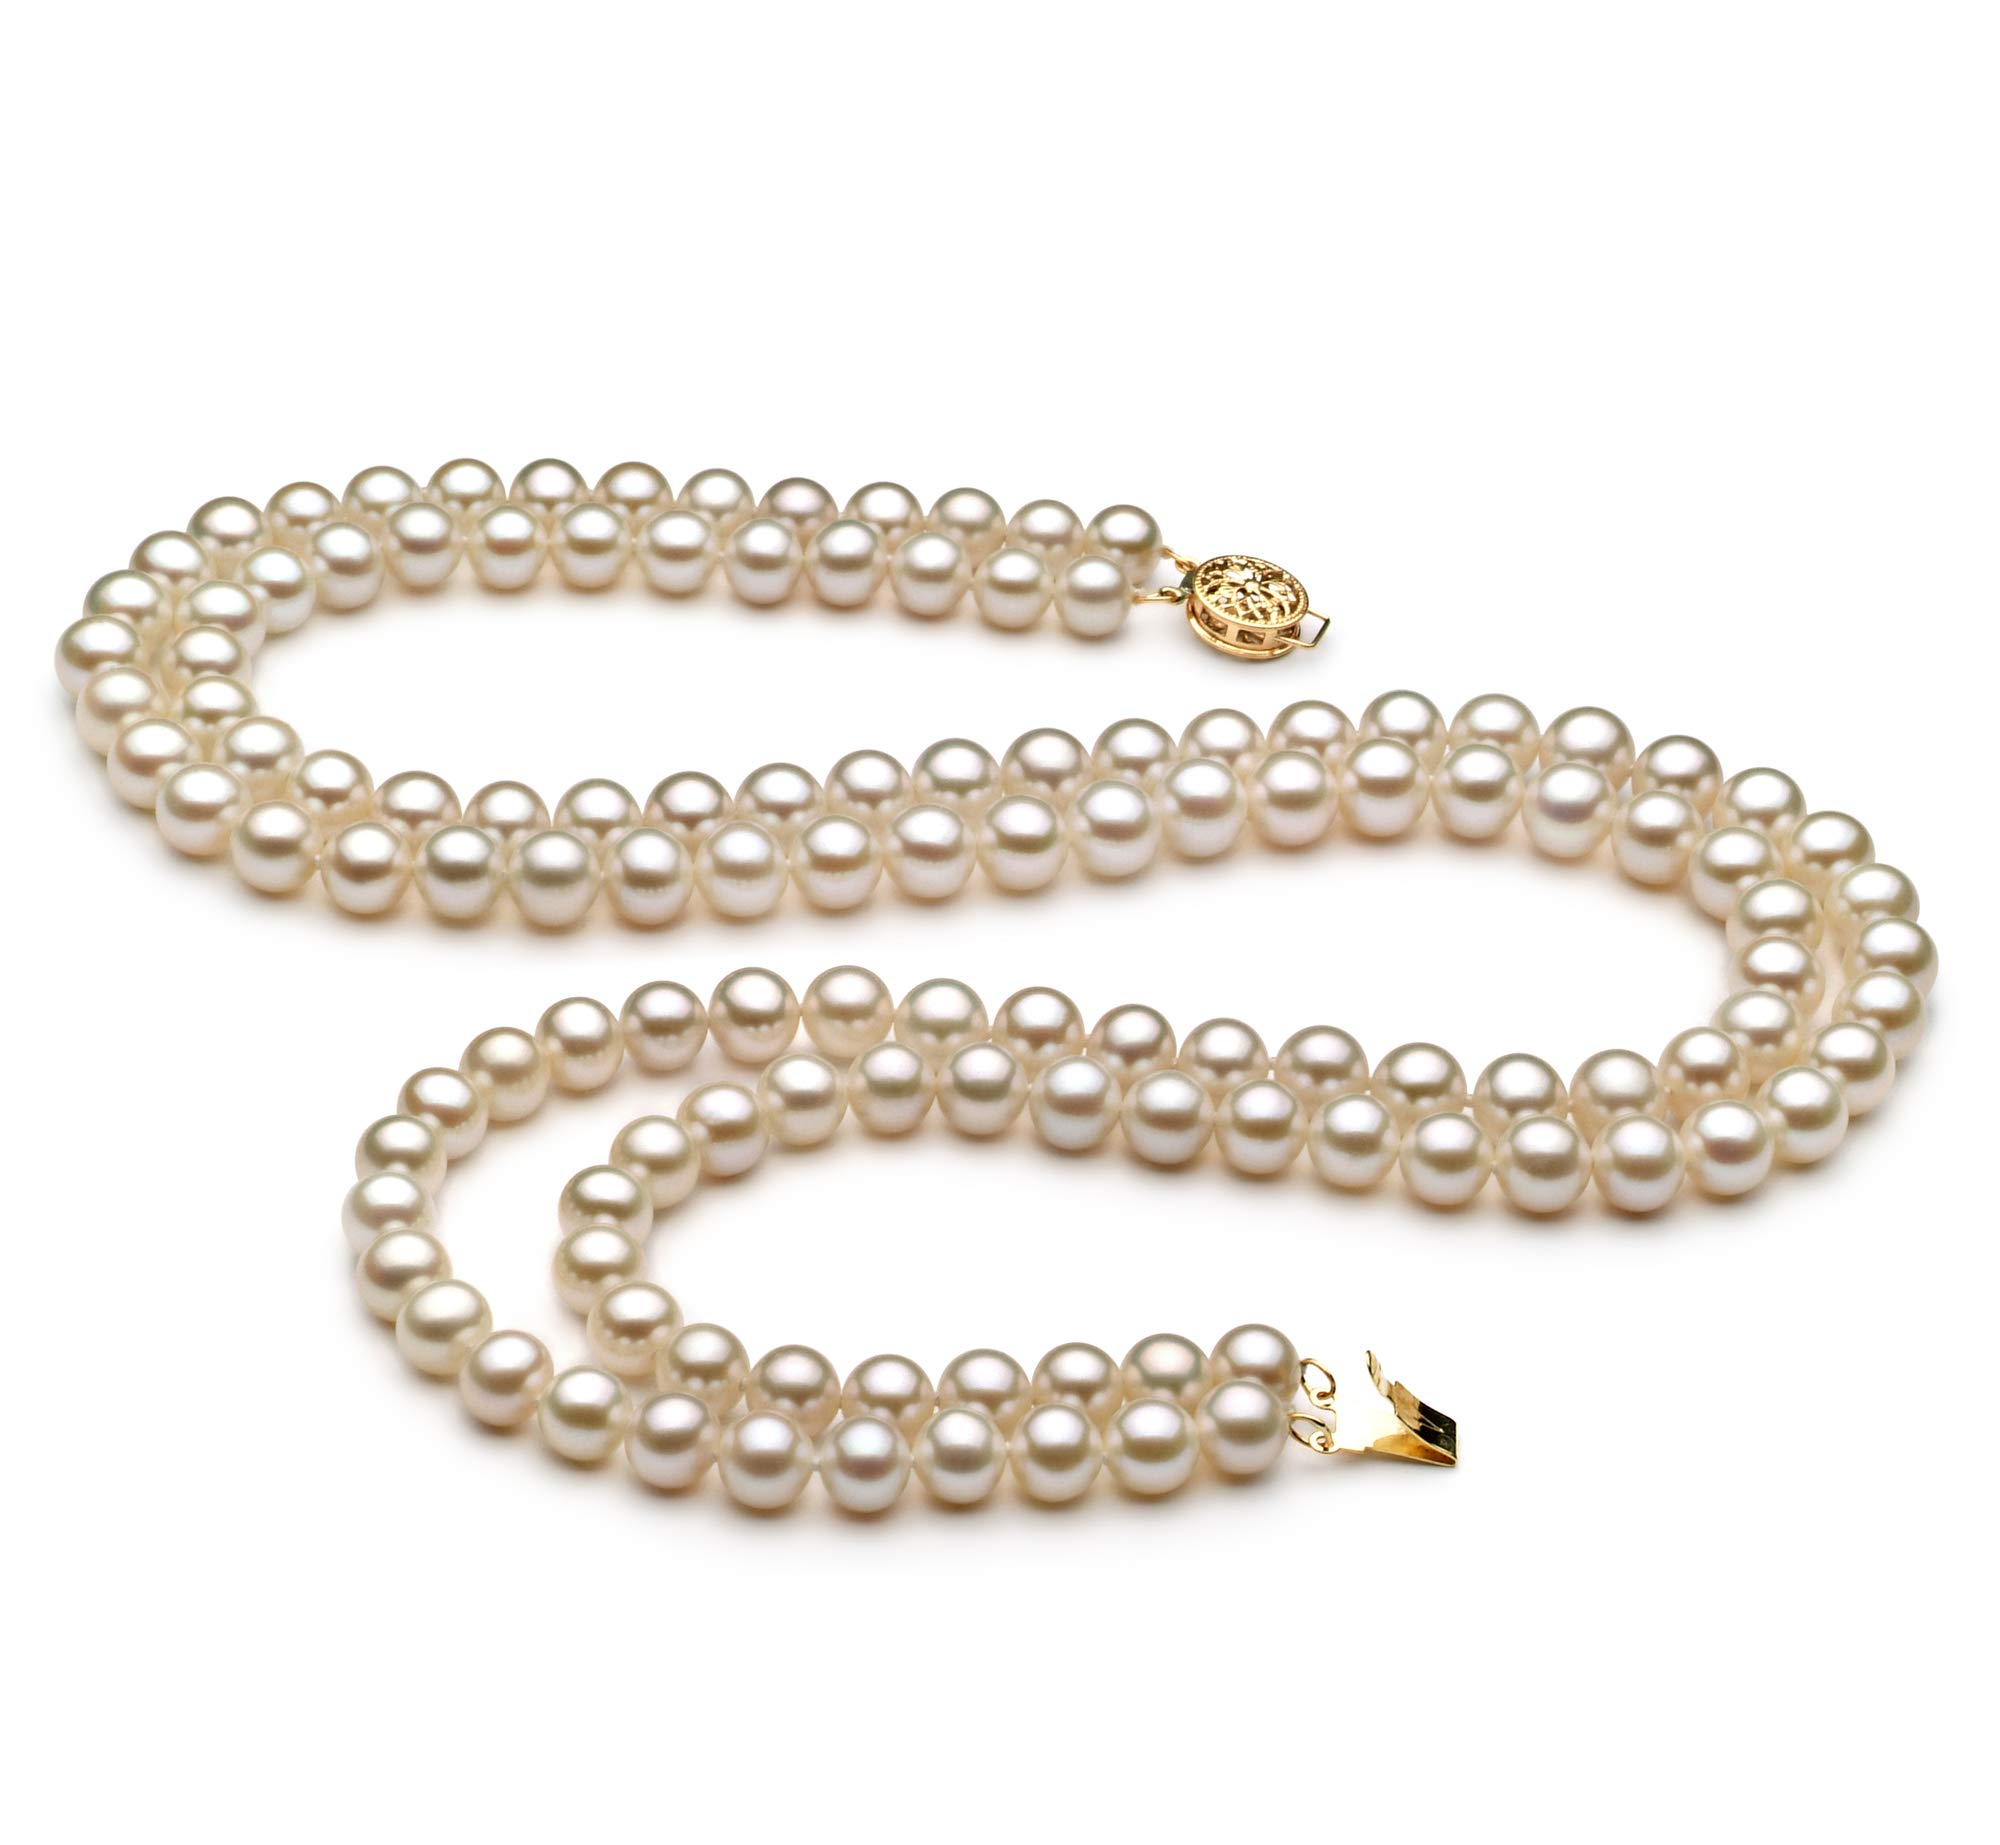 Liah White 6-7mm Double Strand AA Quality Freshwater Cultured Pearl Necklace for Women-23 in Matinee Length